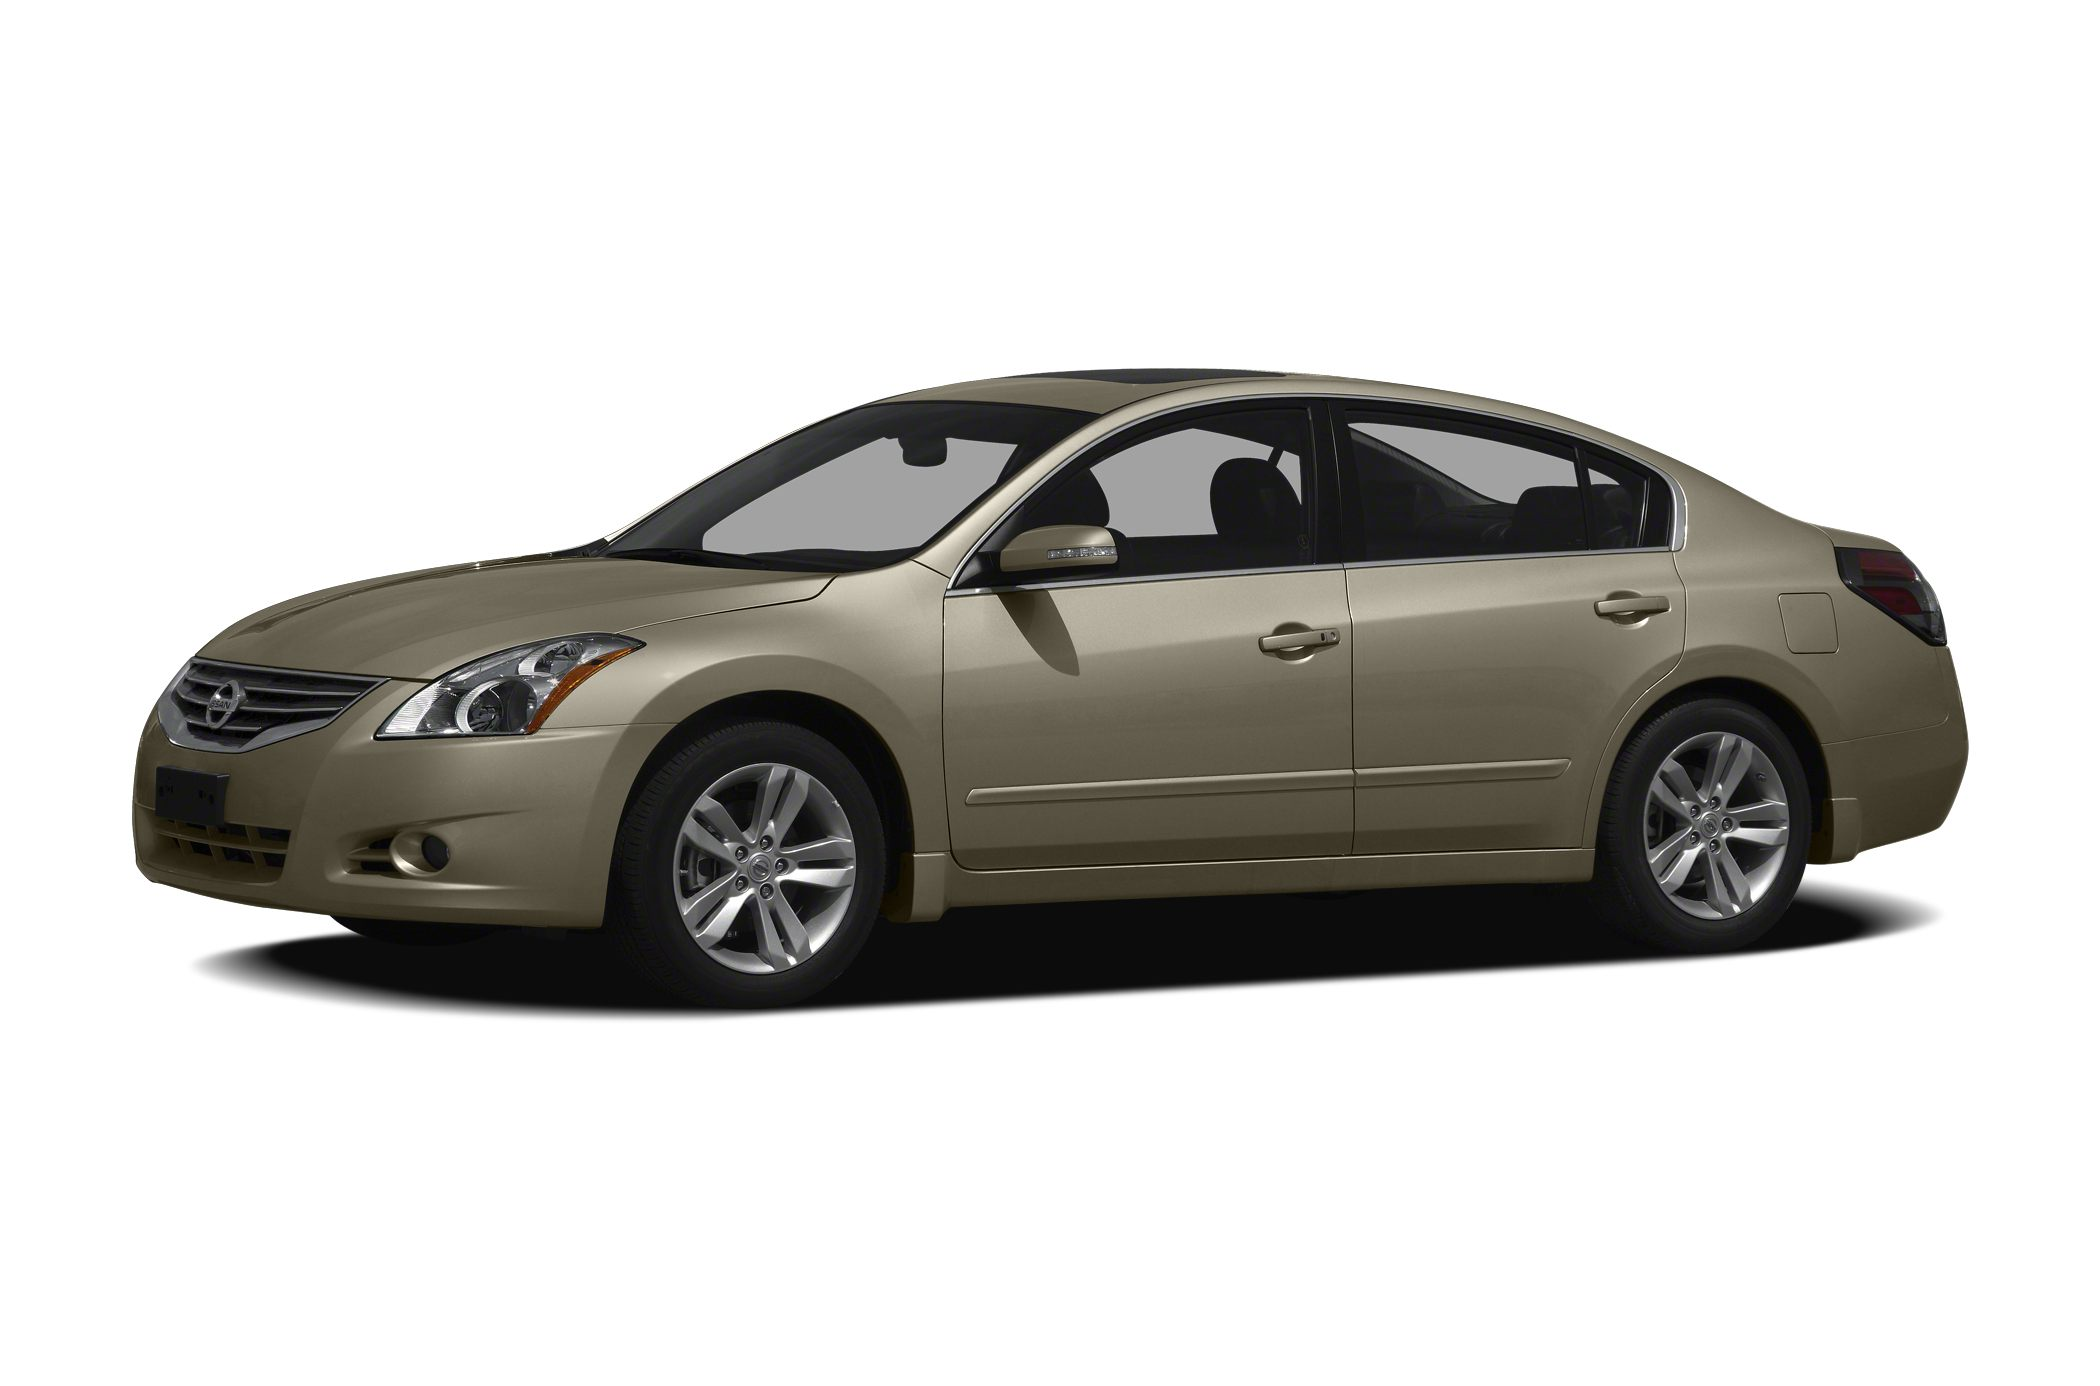 2012 Nissan Altima 2.5 S Sedan for sale in Lake Worth for $10,999 with 53,416 miles